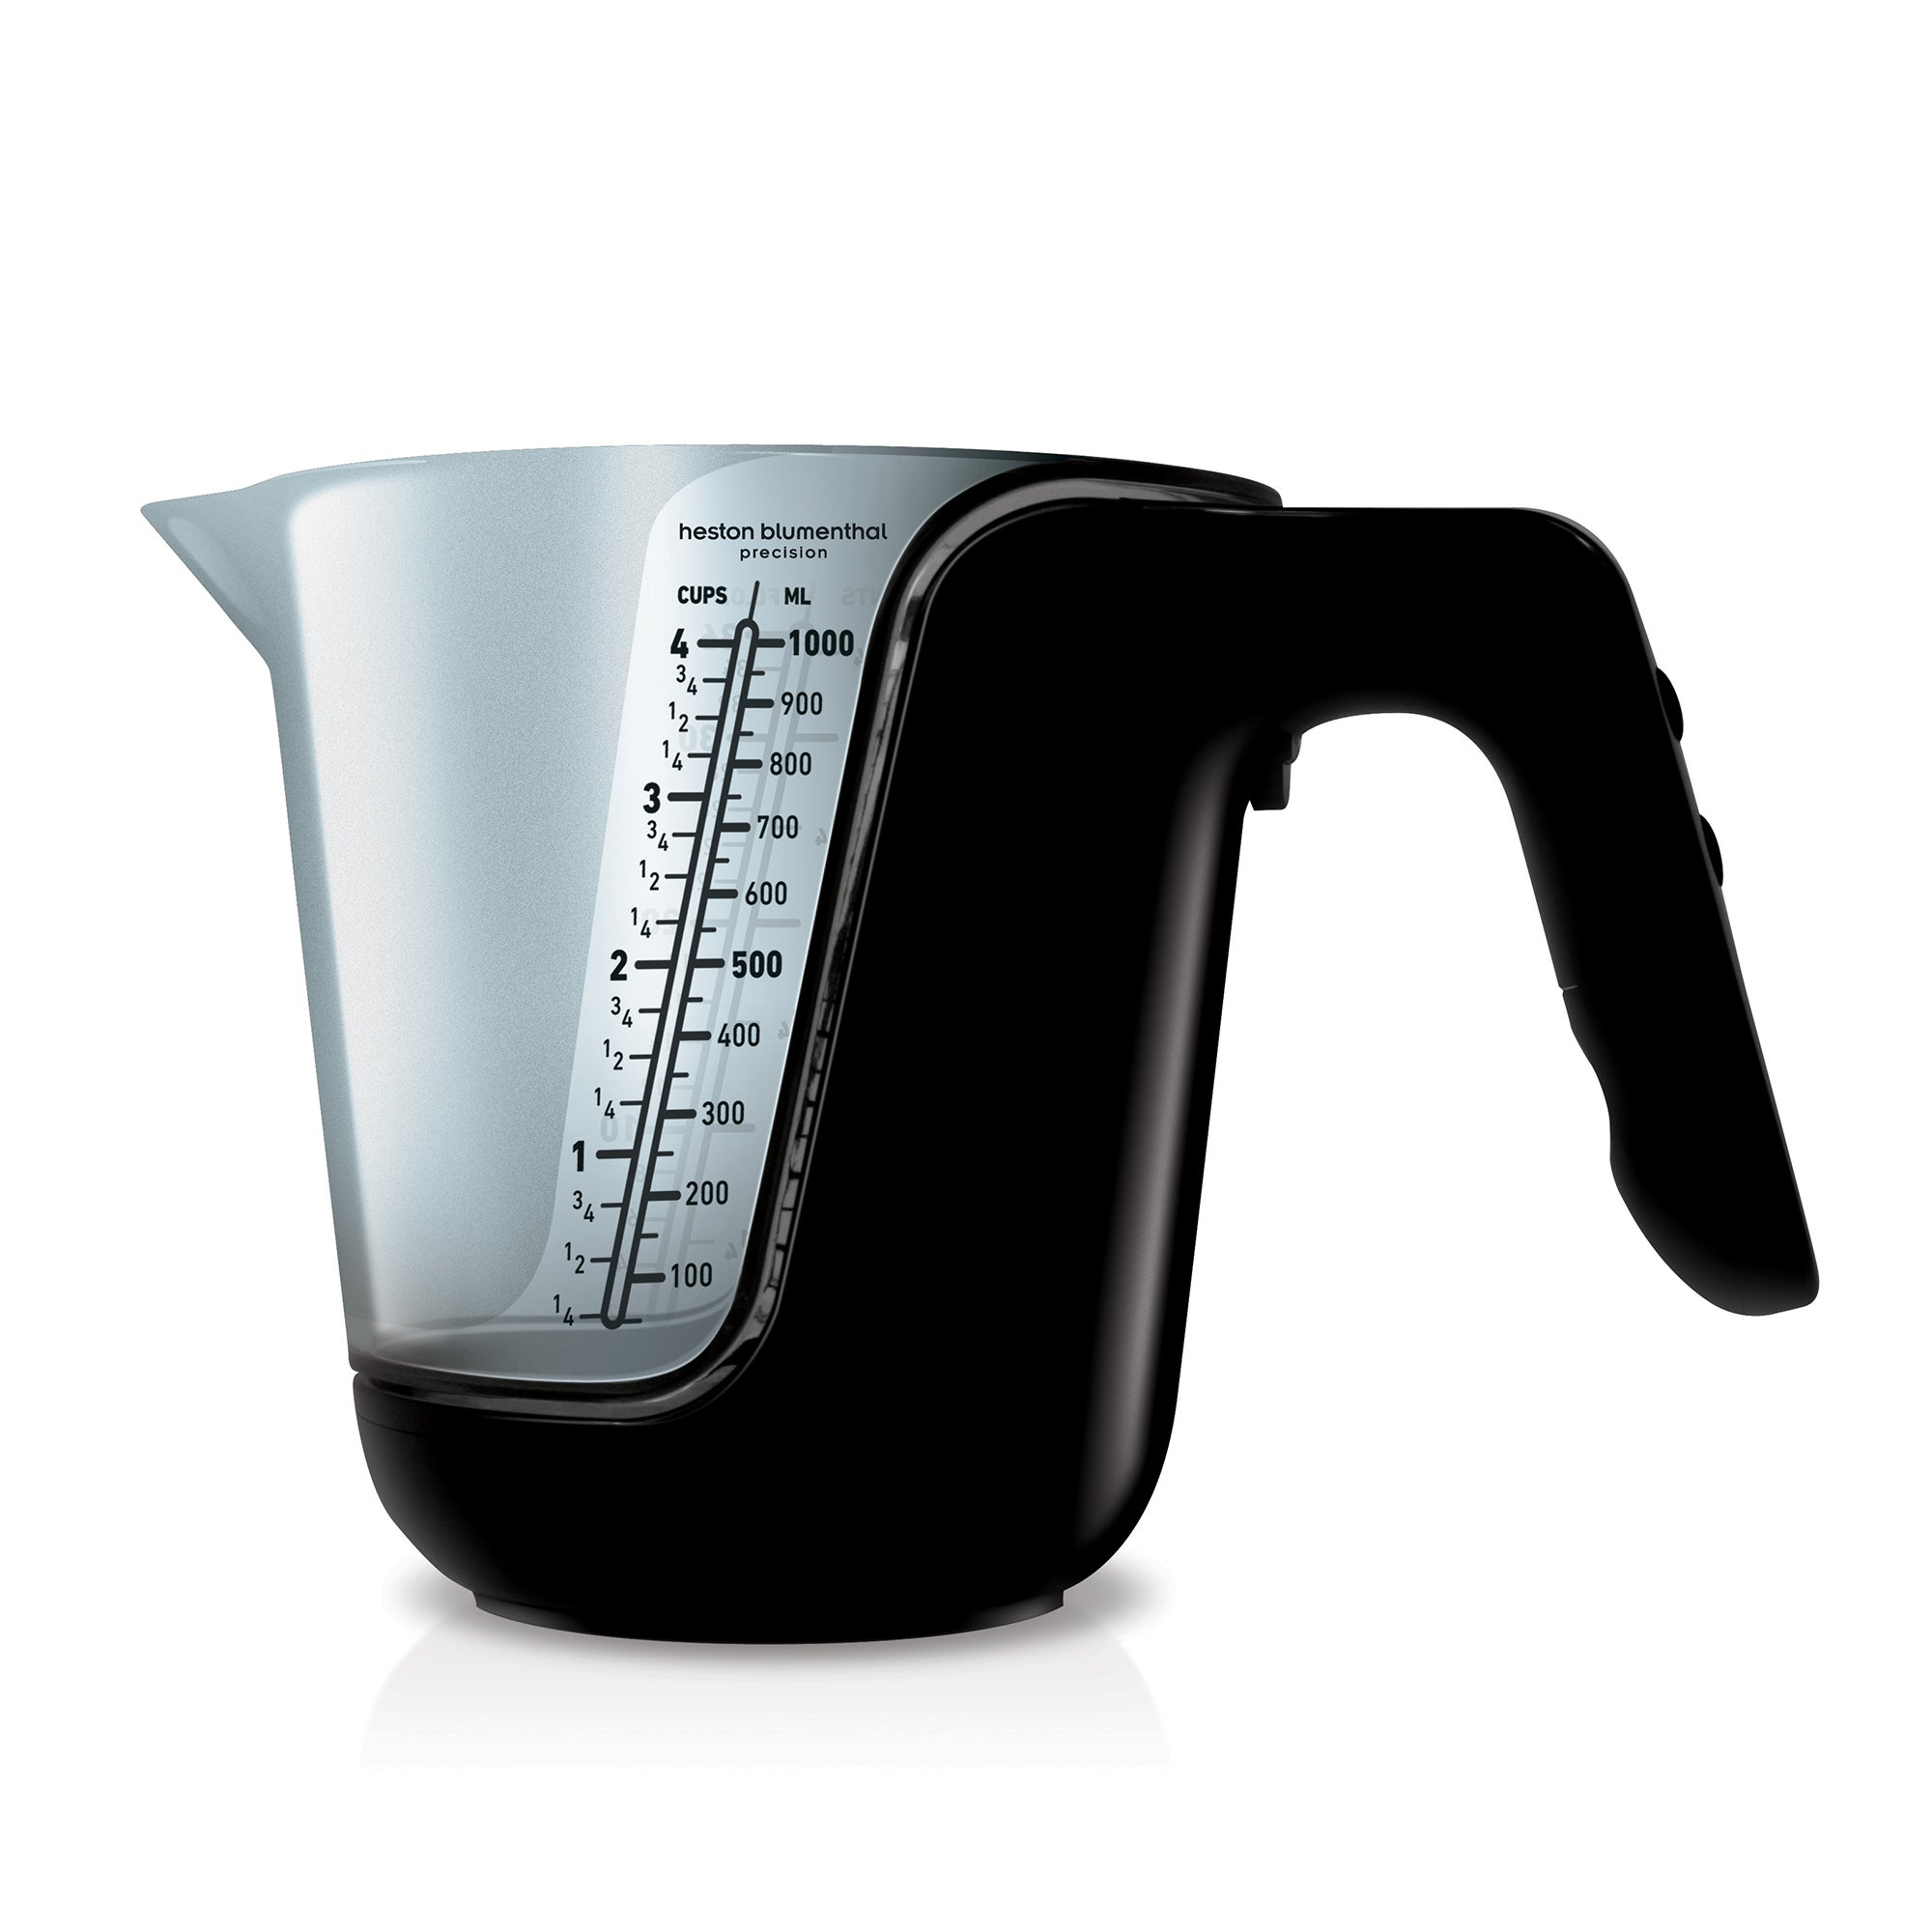 Heston Blumenthal Digital Measuring Jug